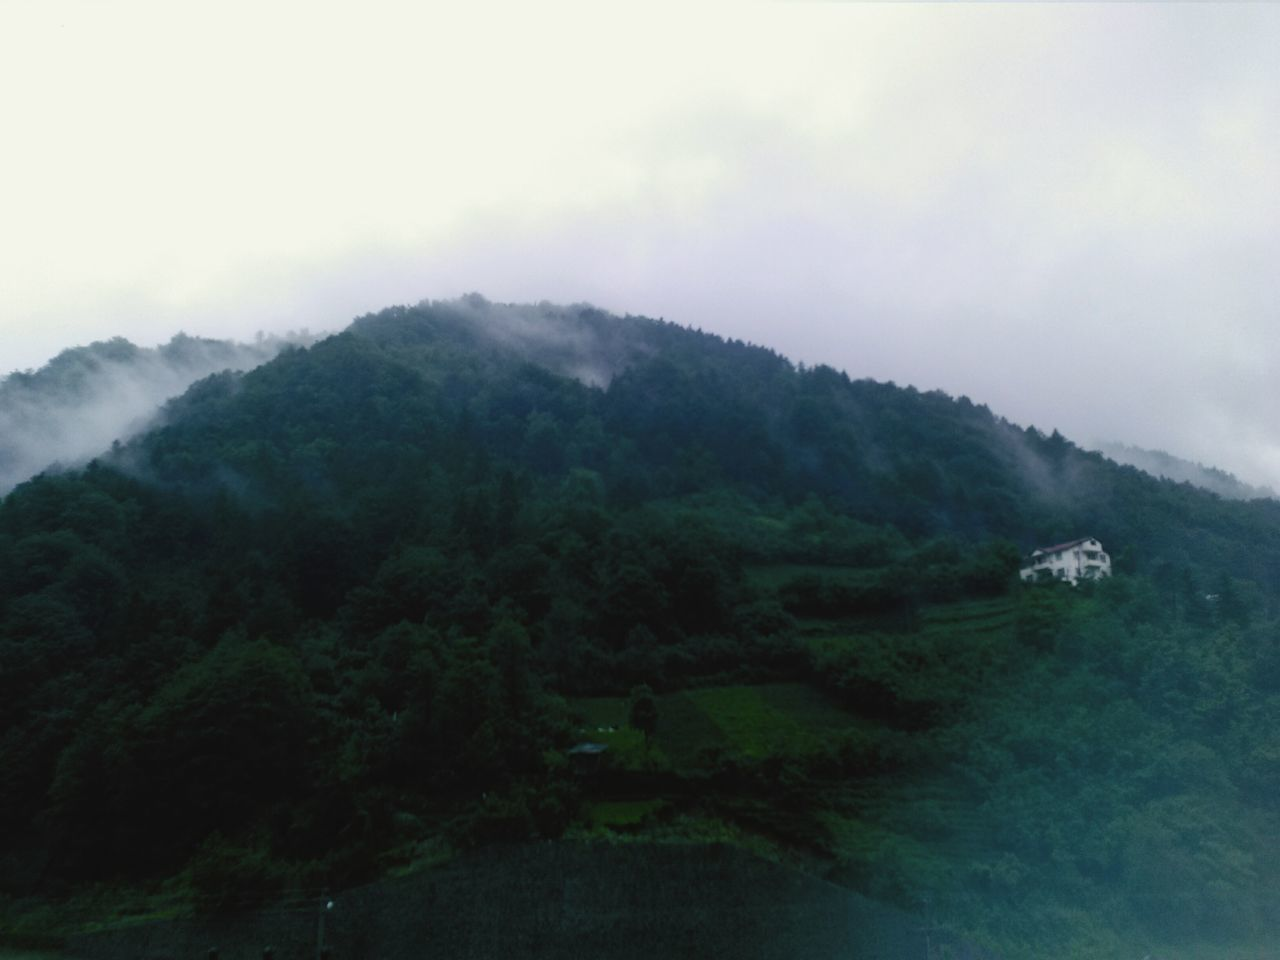 fog, mountain, landscape, mist, nature, tranquil scene, tree, foggy, tranquility, no people, scenics, beauty in nature, outdoors, sky, hazy, day